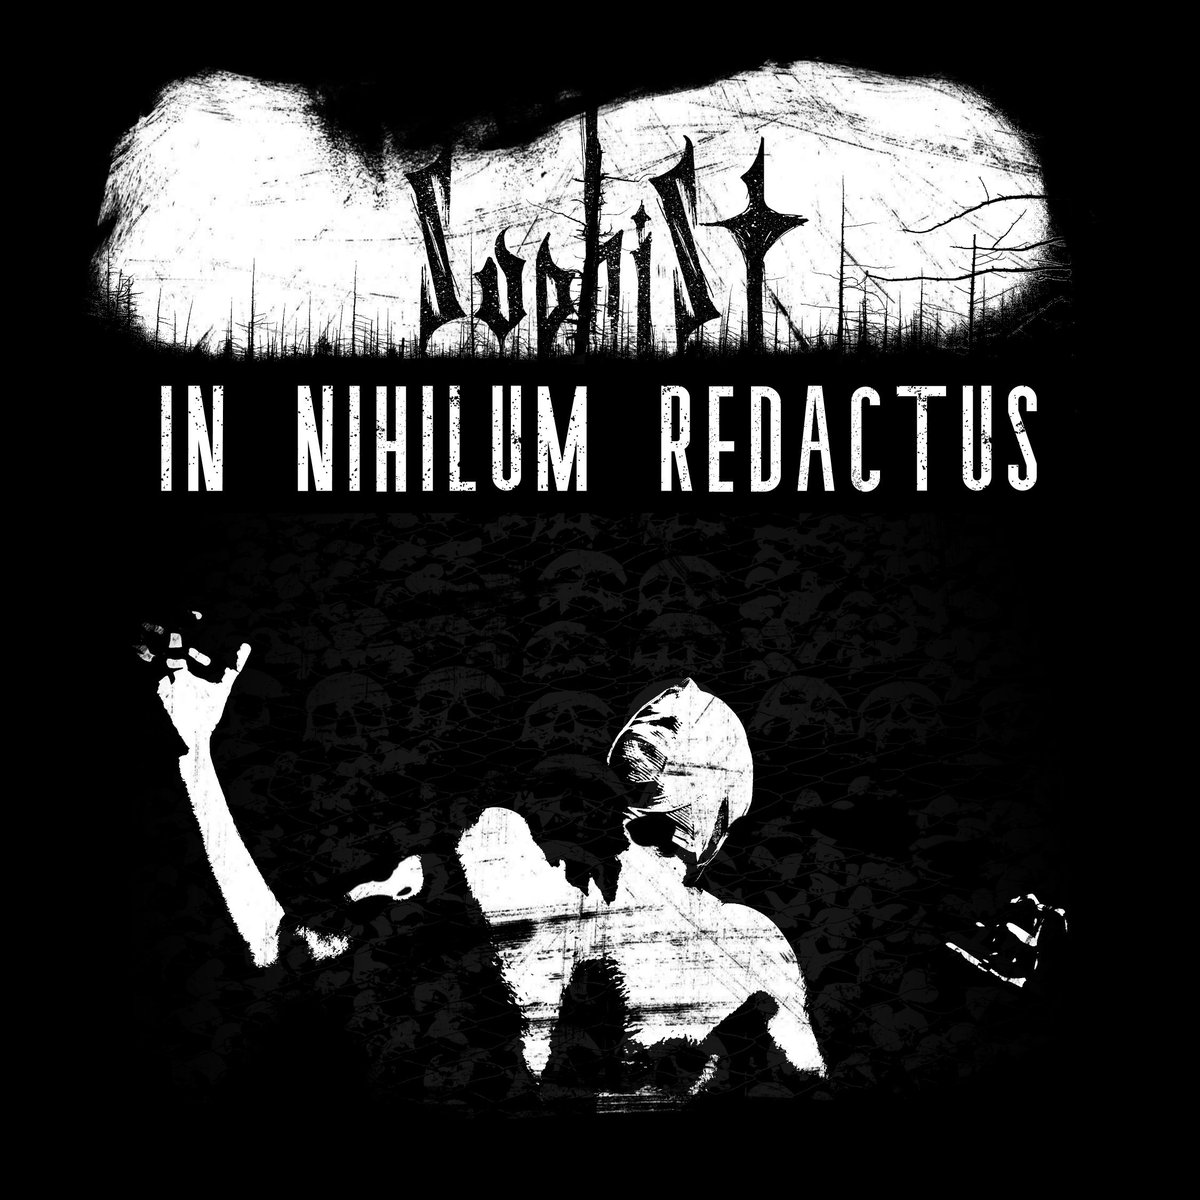 IN NIHILUM REDACTUS, our next single hits the net on November 22nd. It's from our upcoming lp DISSOLUTION, available soon on Niflhel Records. @niflhelrecords #blackmetal #grindcore #blackgrind #sophist #blastbeats #metal #extrememetal #300bpm #necro #canadianmetal #yegmetal pic.twitter.com/eFWbKliZiR